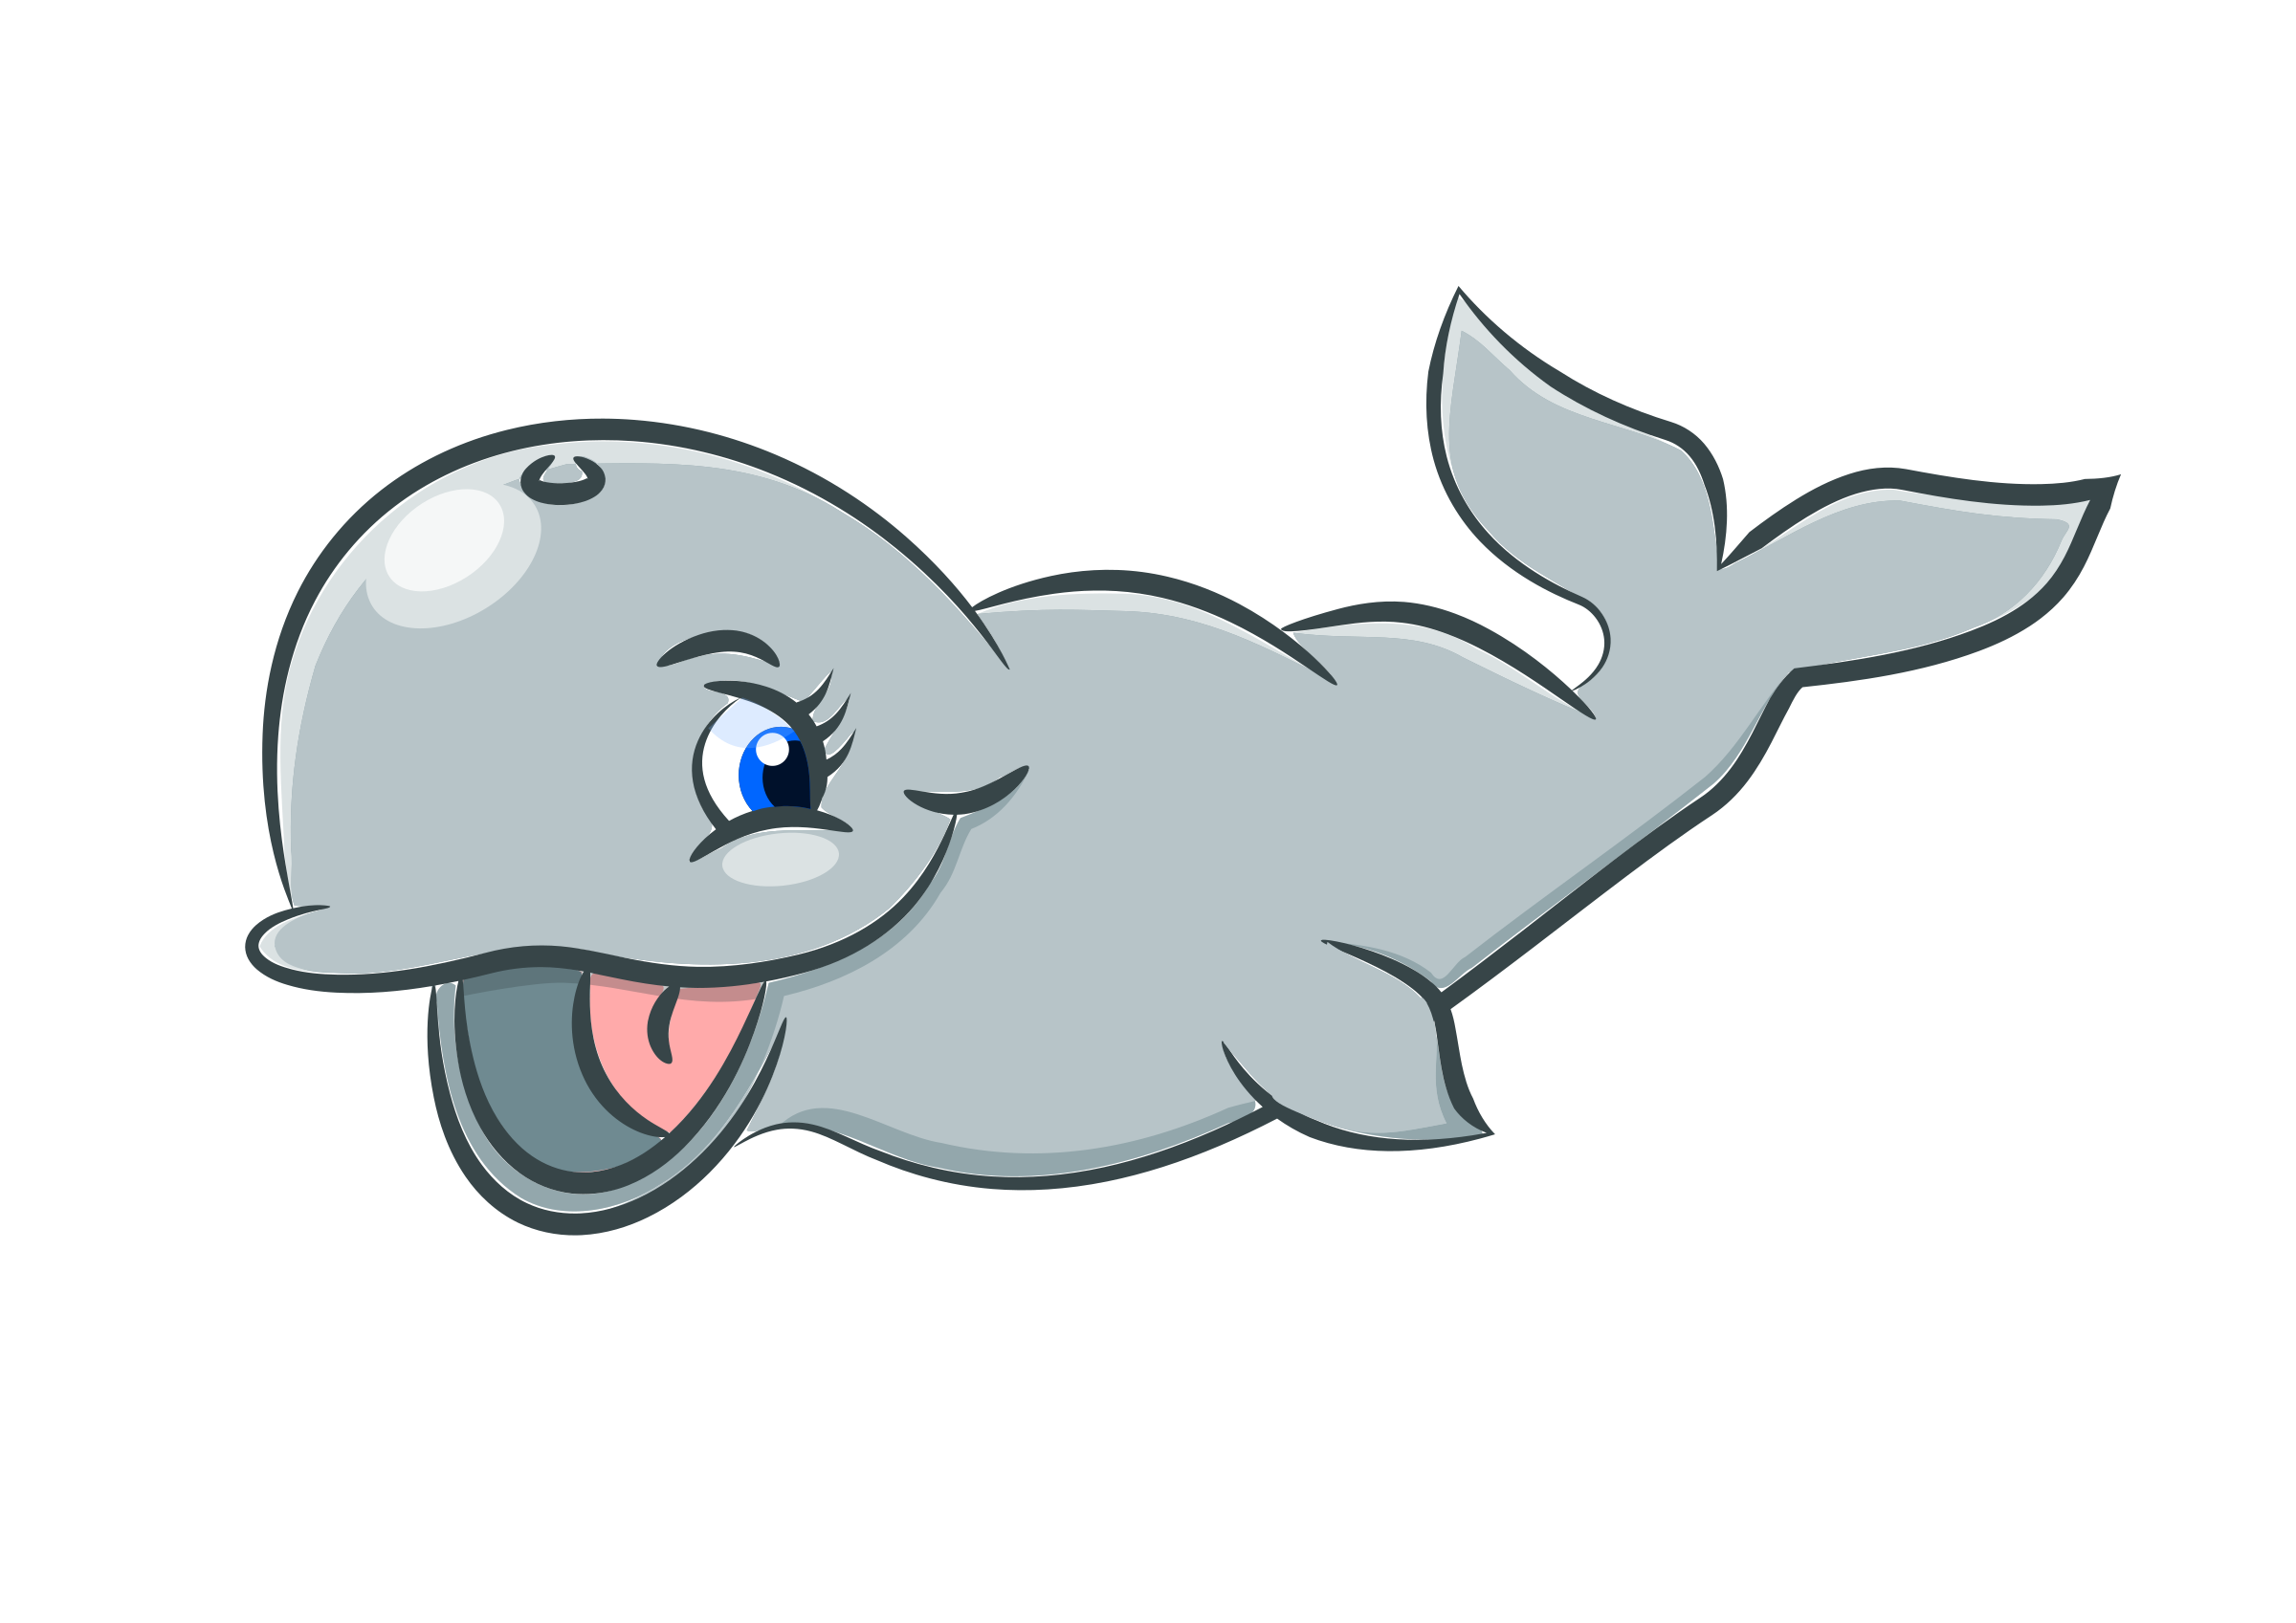 Cute whale by Susa